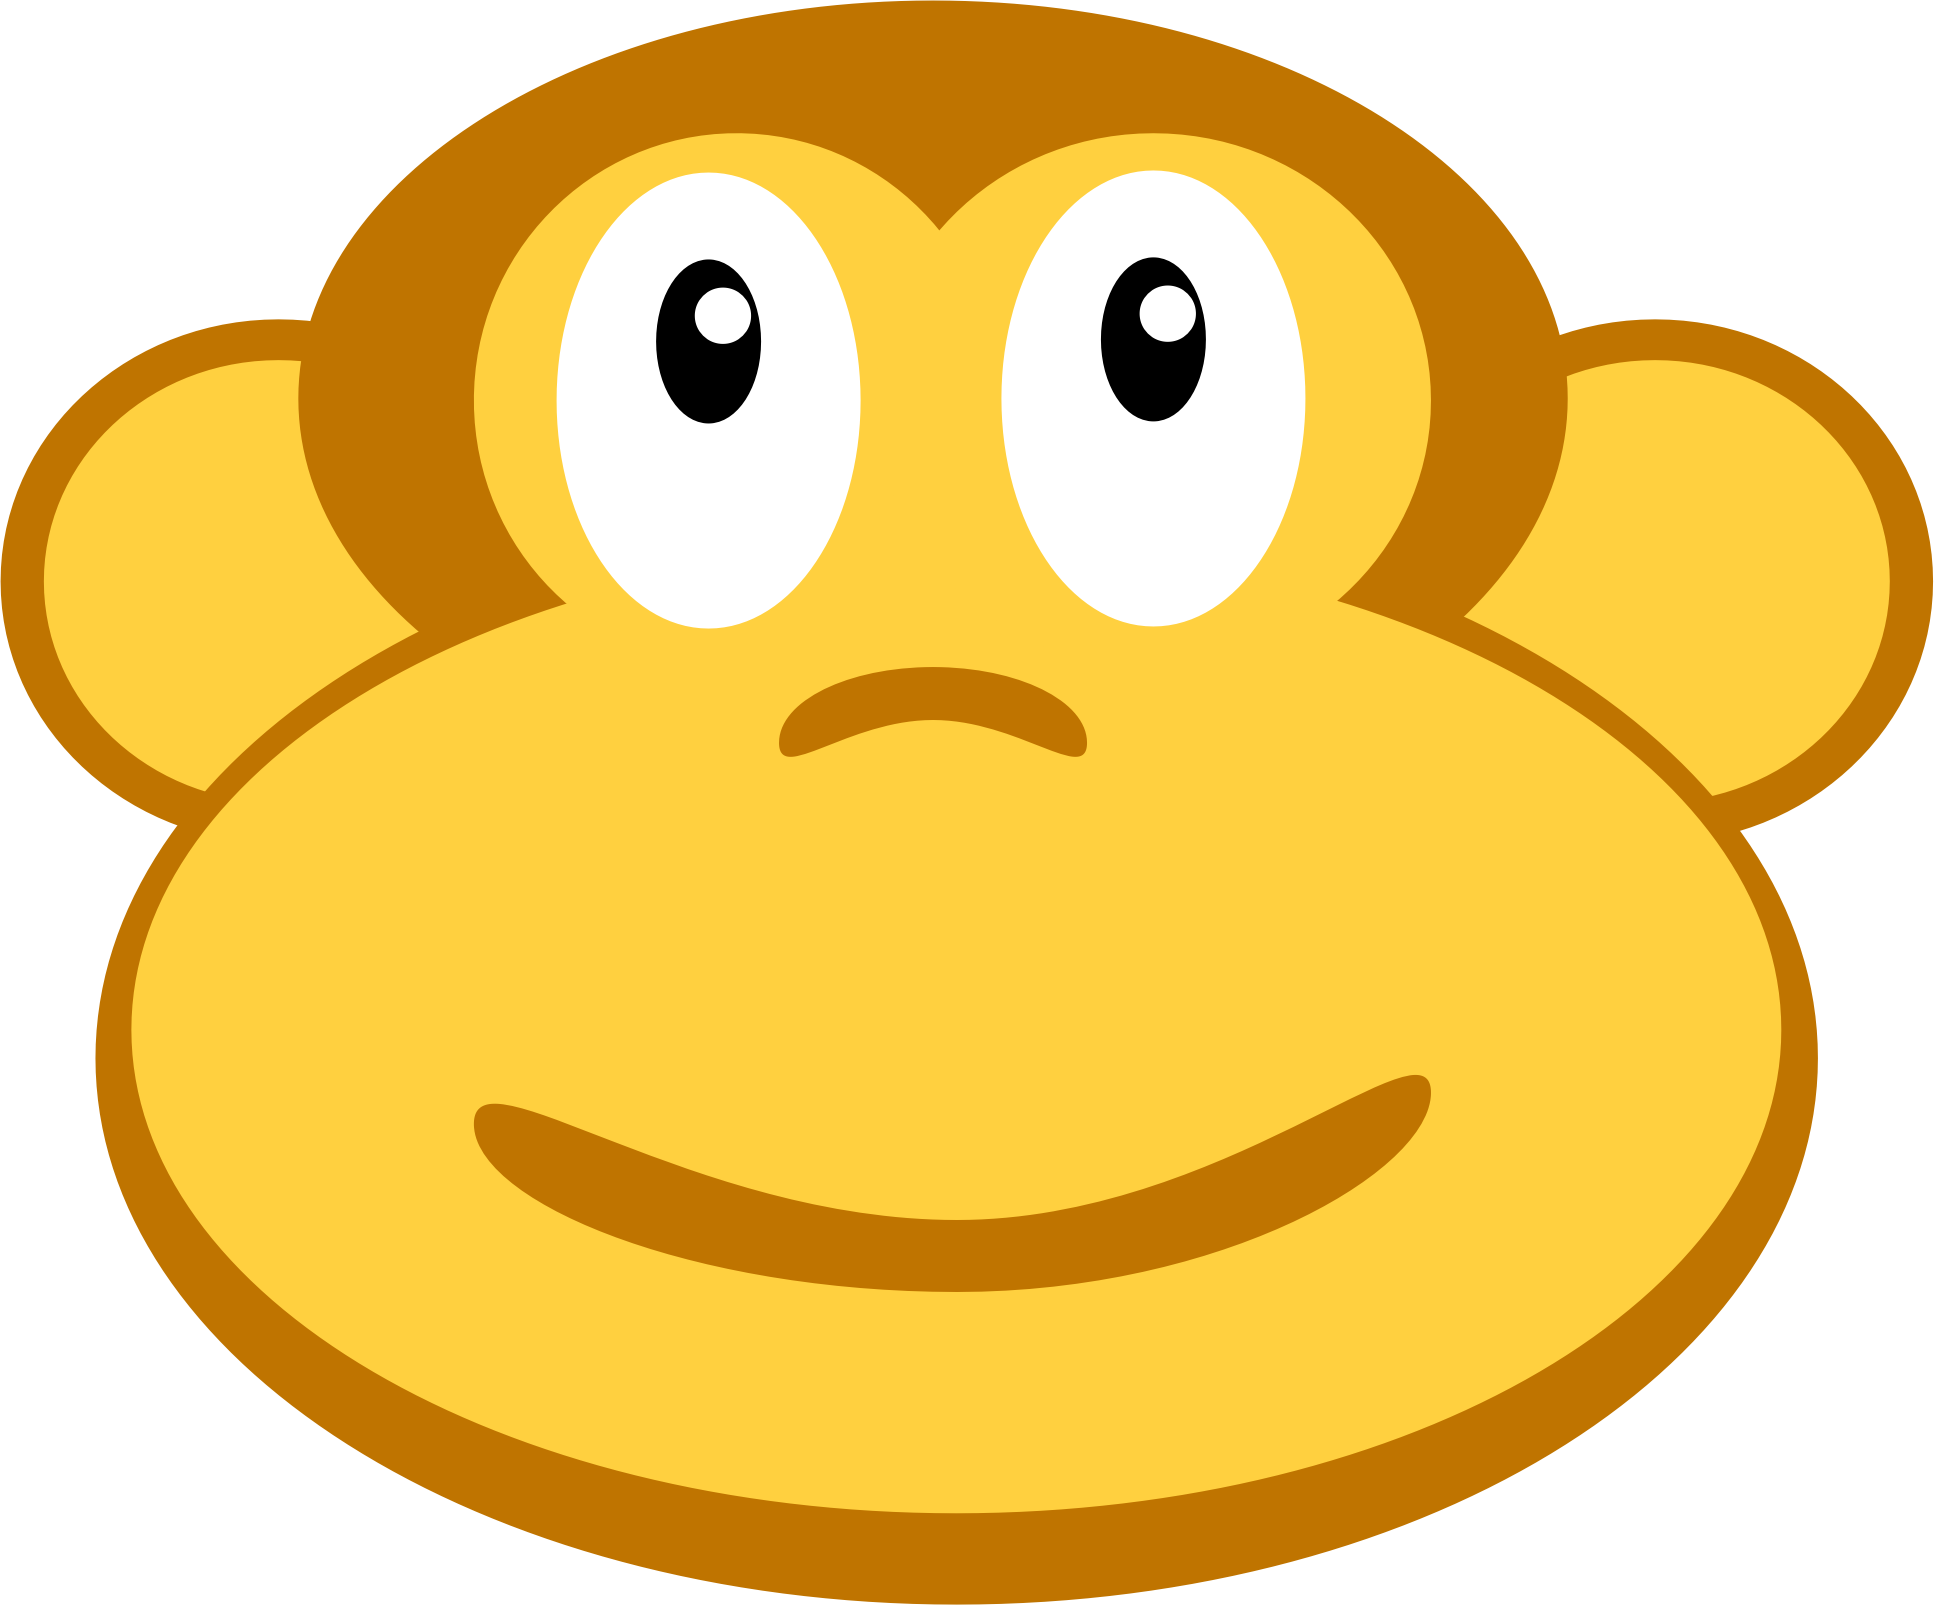 Monkey by helljumper1904